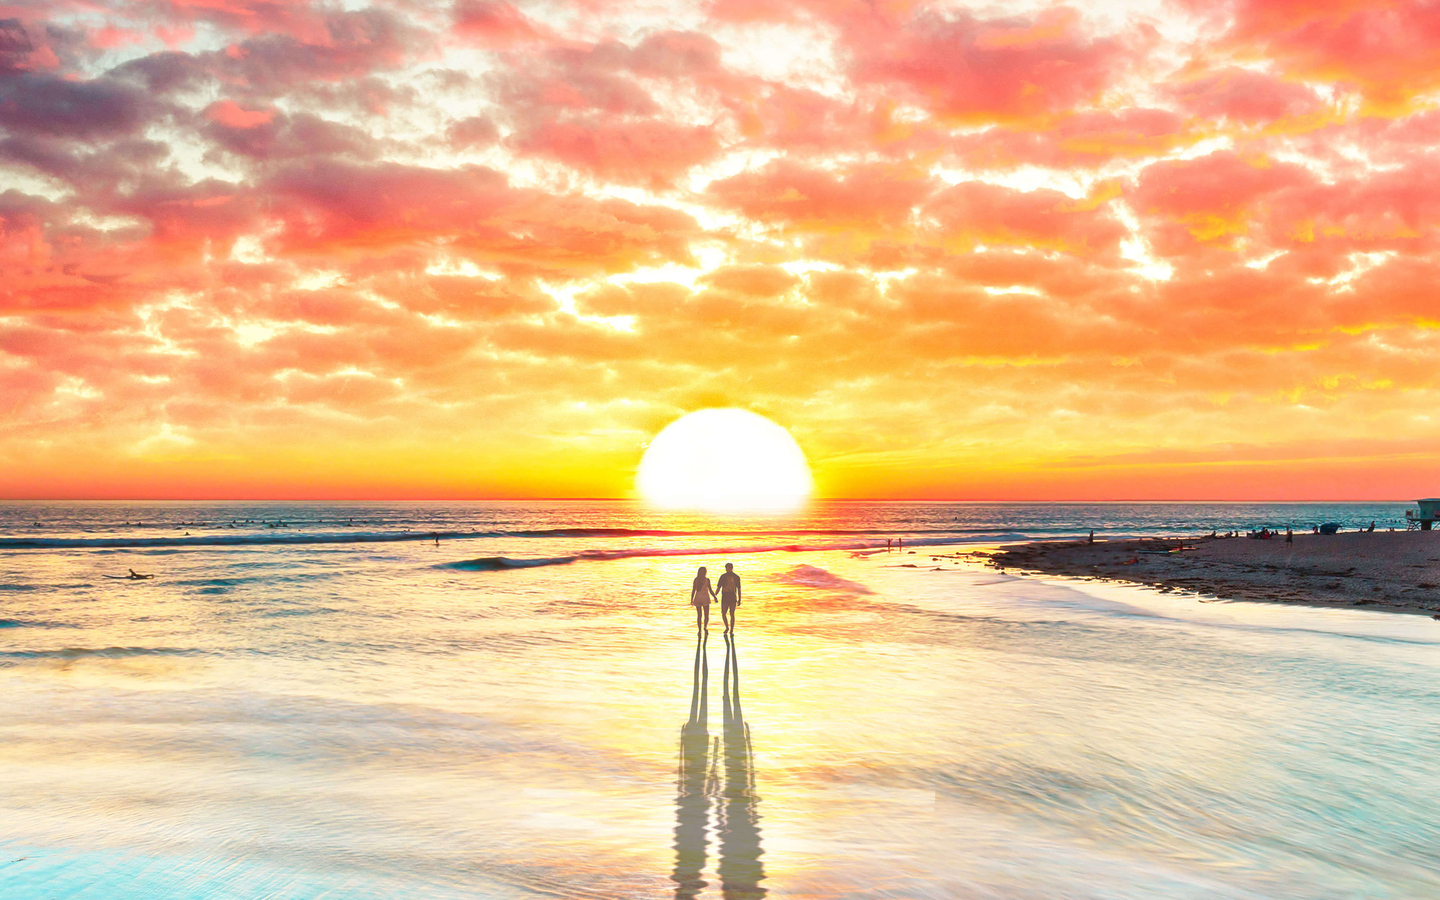 1440x900 Beach Couple Watching Sunset 4k 1440x900 Resolution